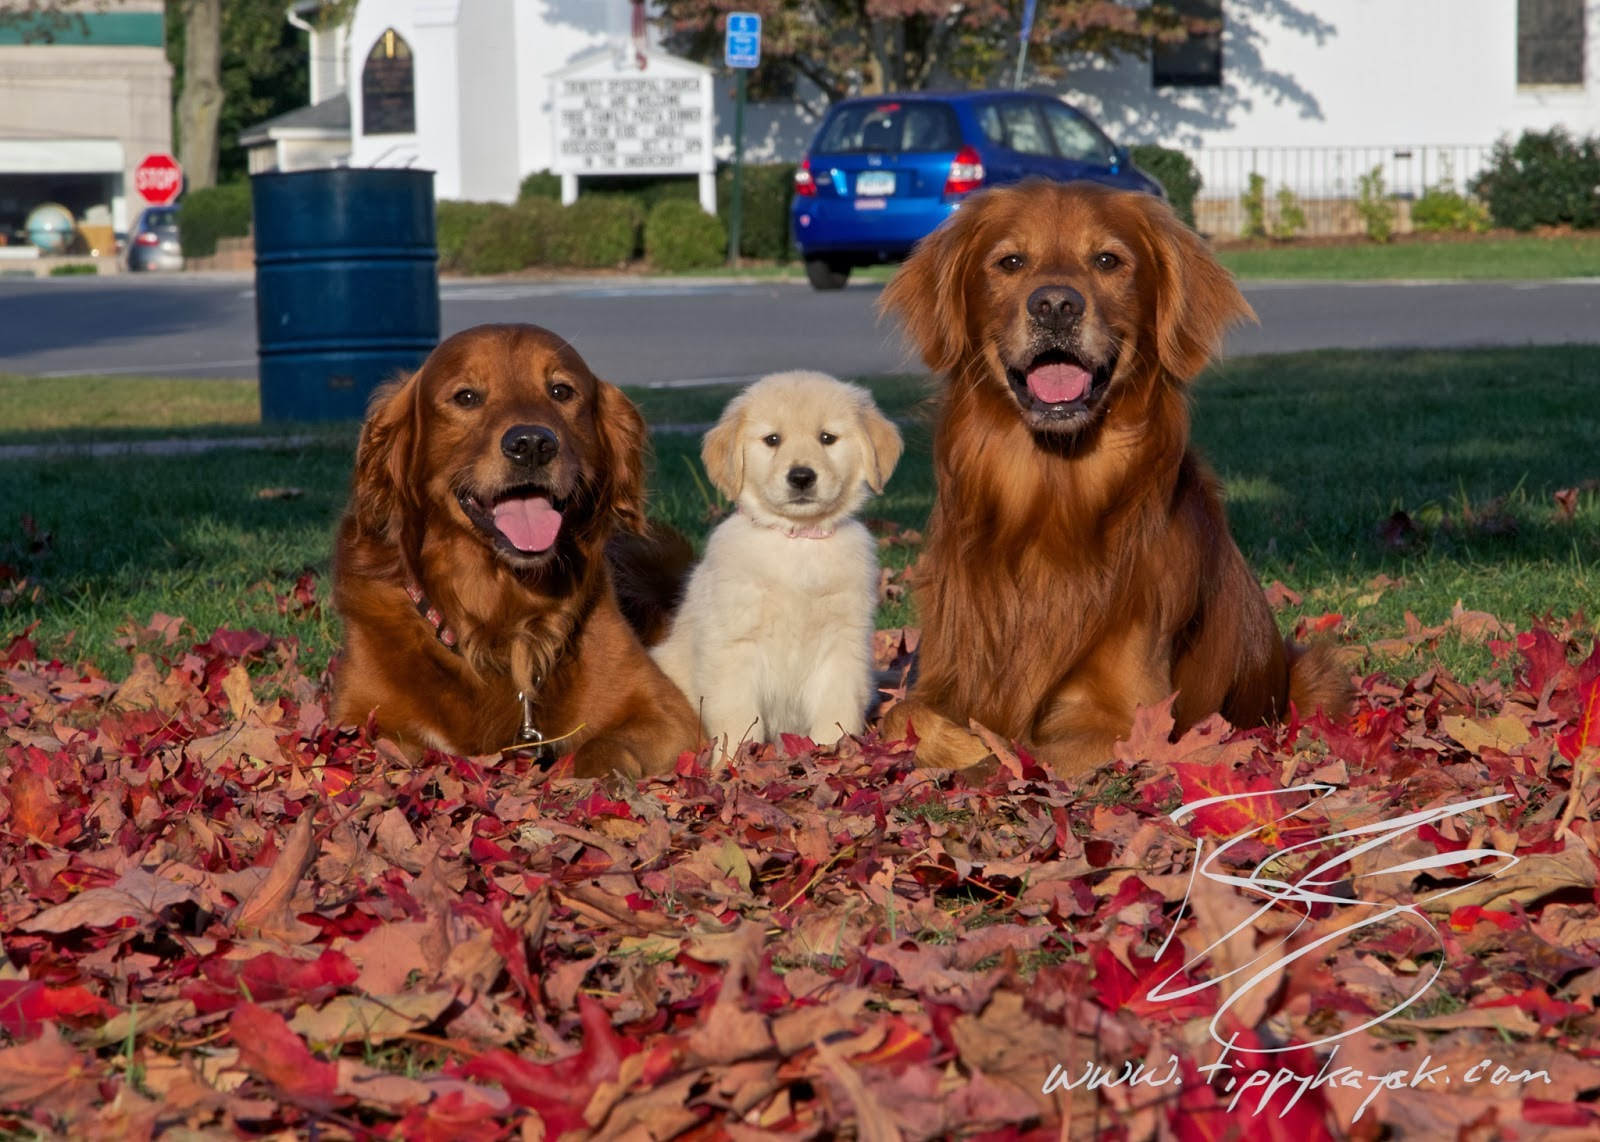 Puppy Tao: How to Find a Red Golden Retriever